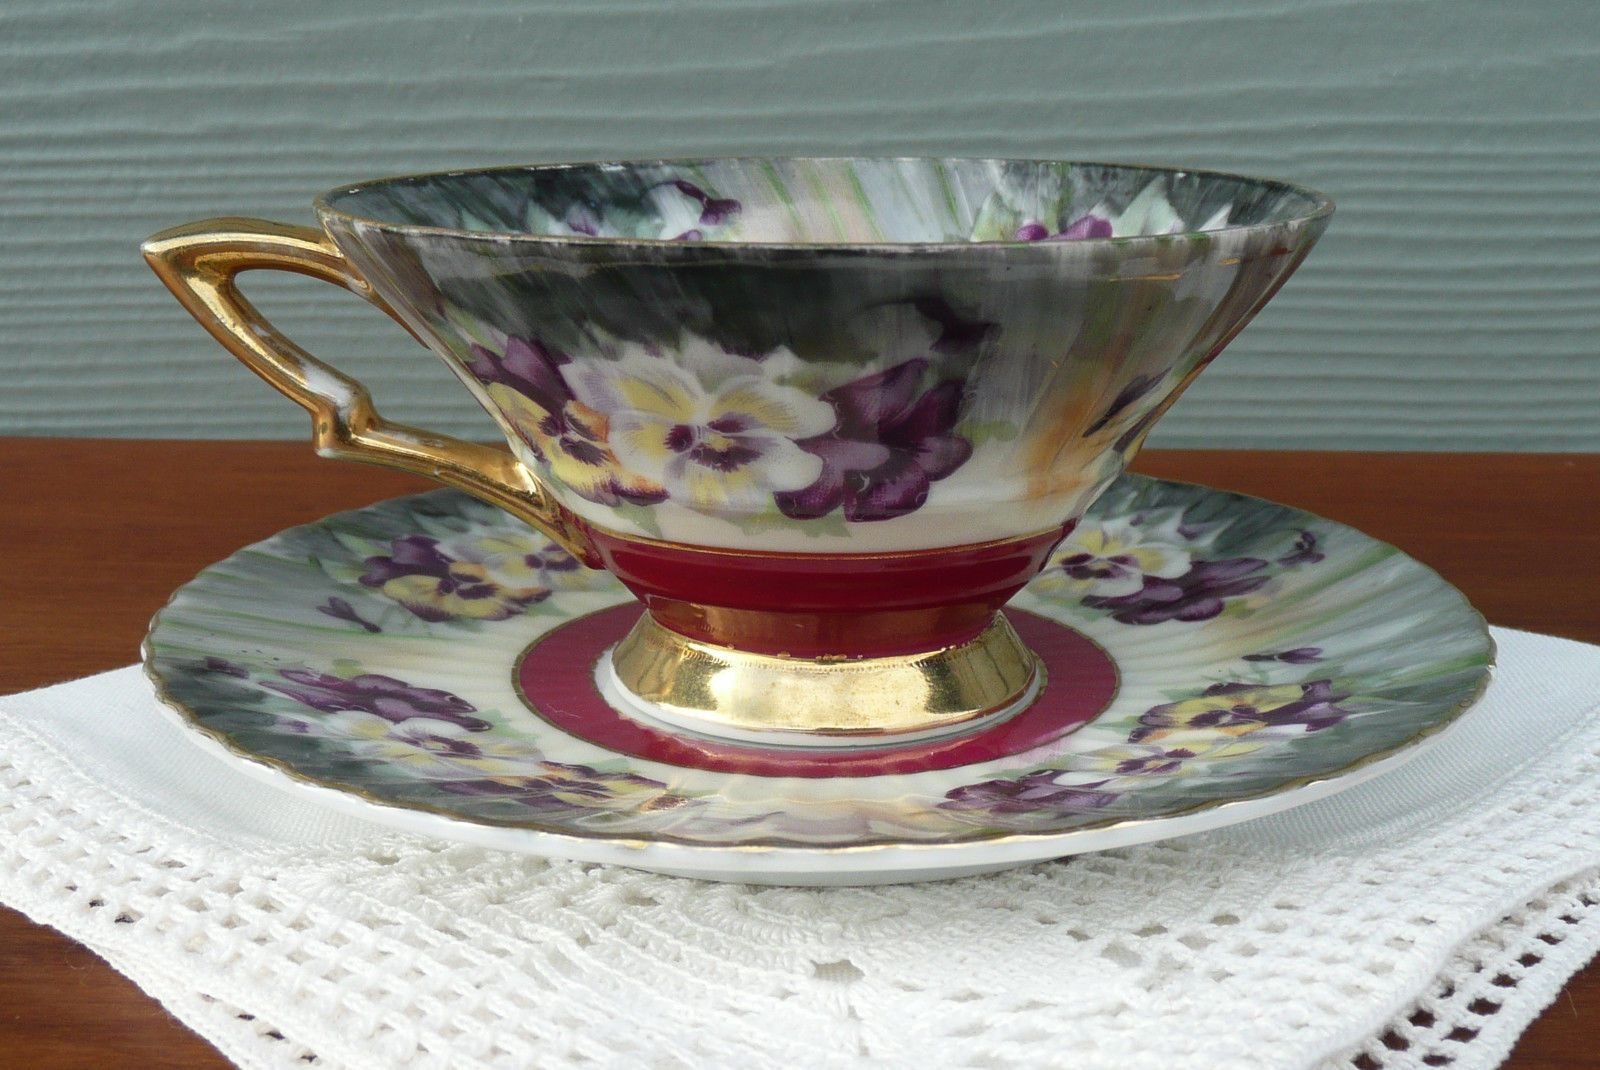 Vintage Pansy Pattern Pansies Tea Cup & Saucer Set ~ Unusual Shaped Teacup 7